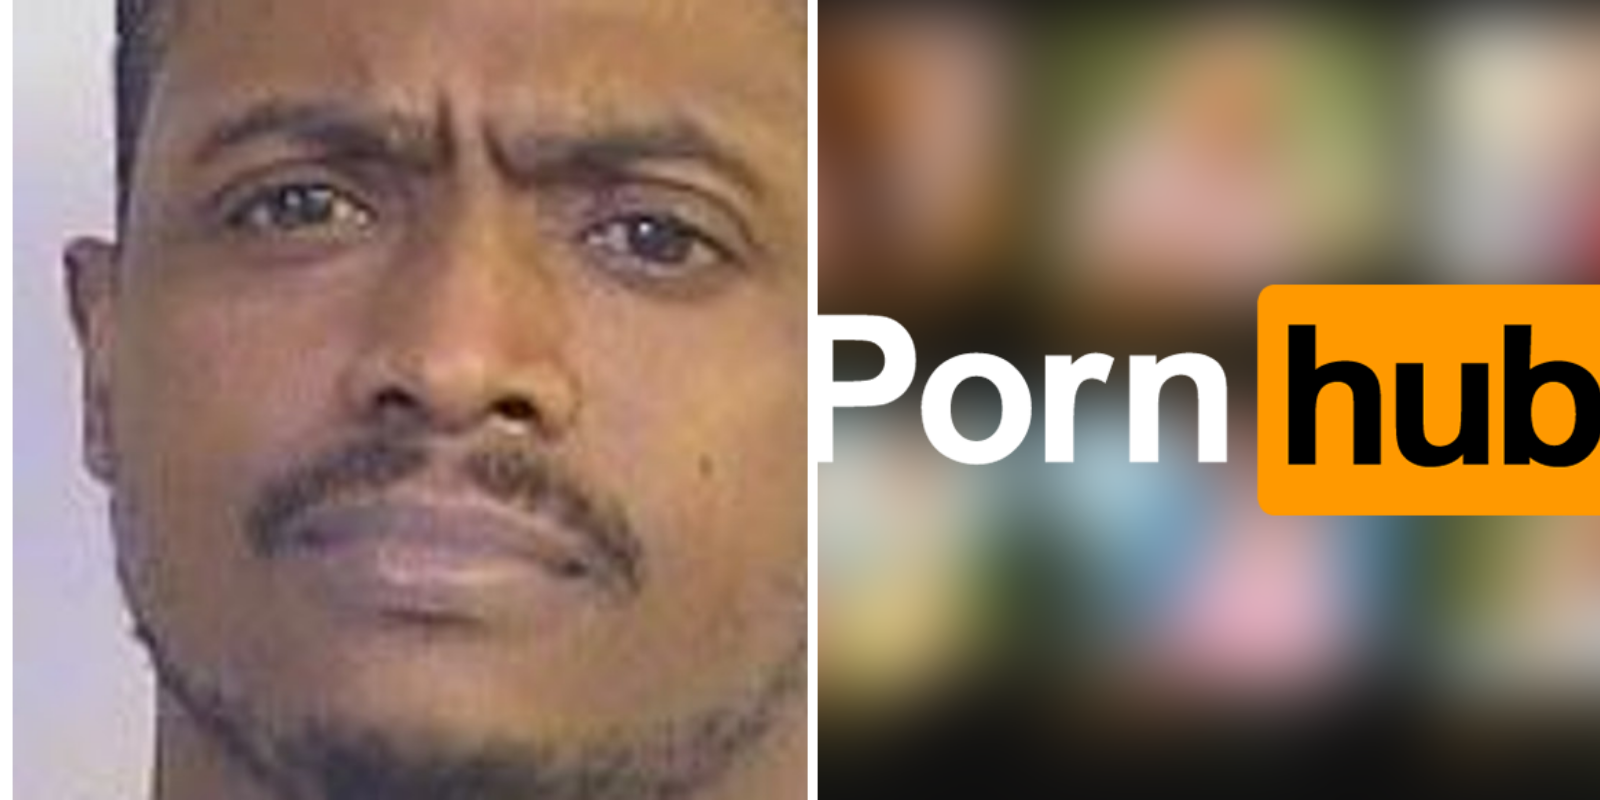 Man arrested after Pornhub featured and monetized his alleged rape of 16-year-old girl